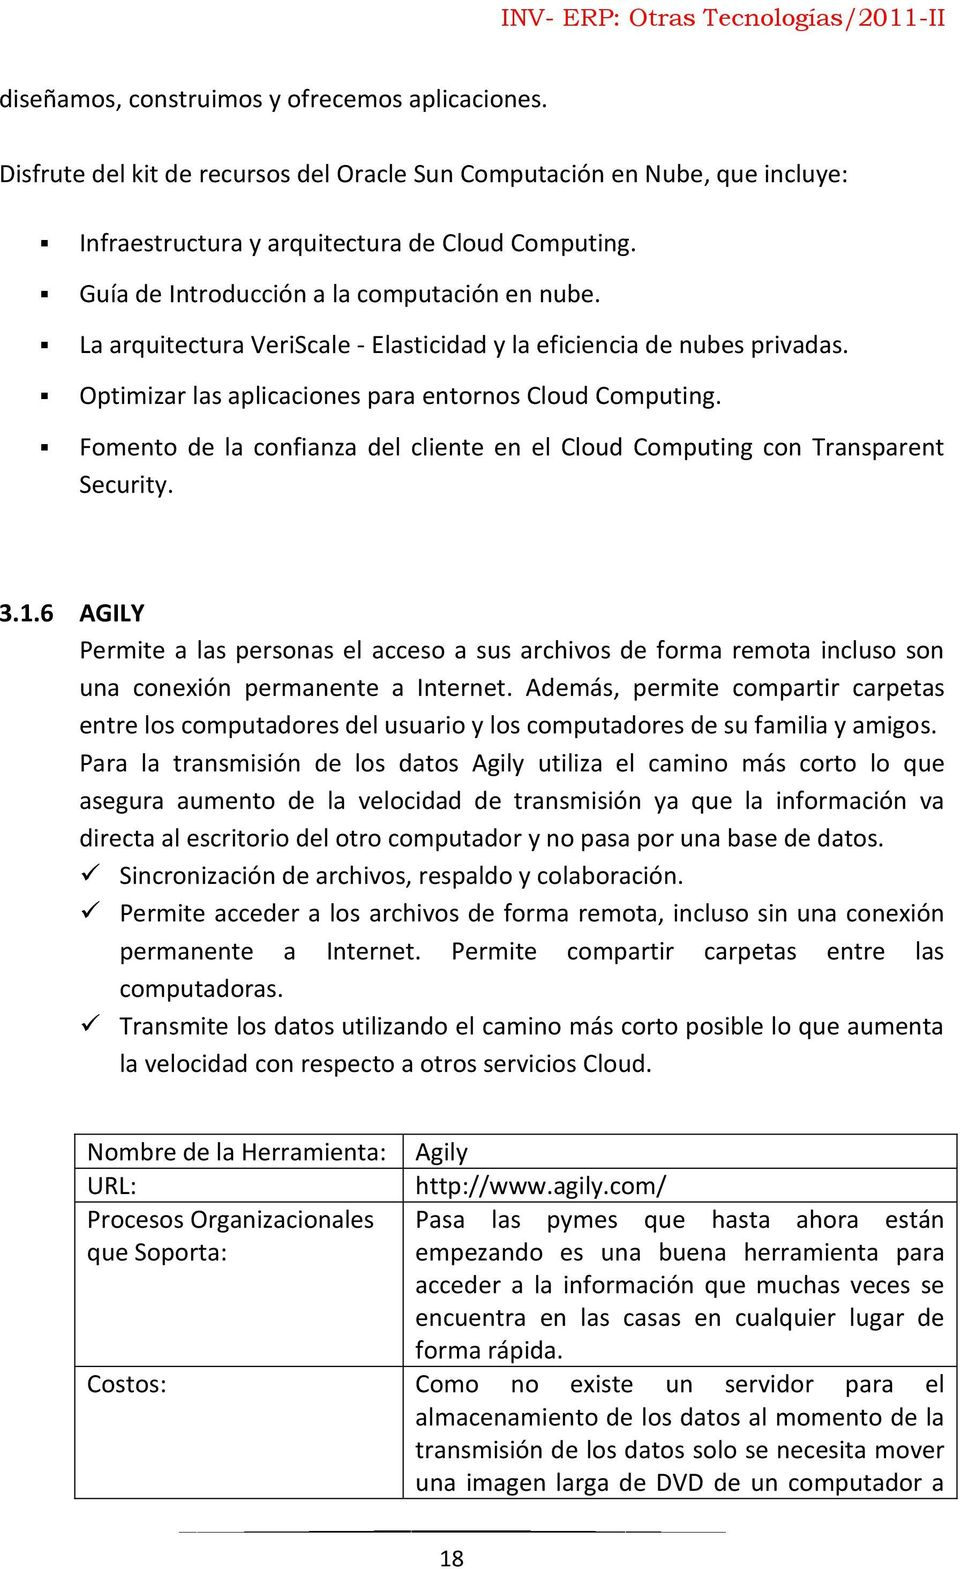 Fomento de la confianza del cliente en el Cloud Computing con Transparent Security. 3.1.